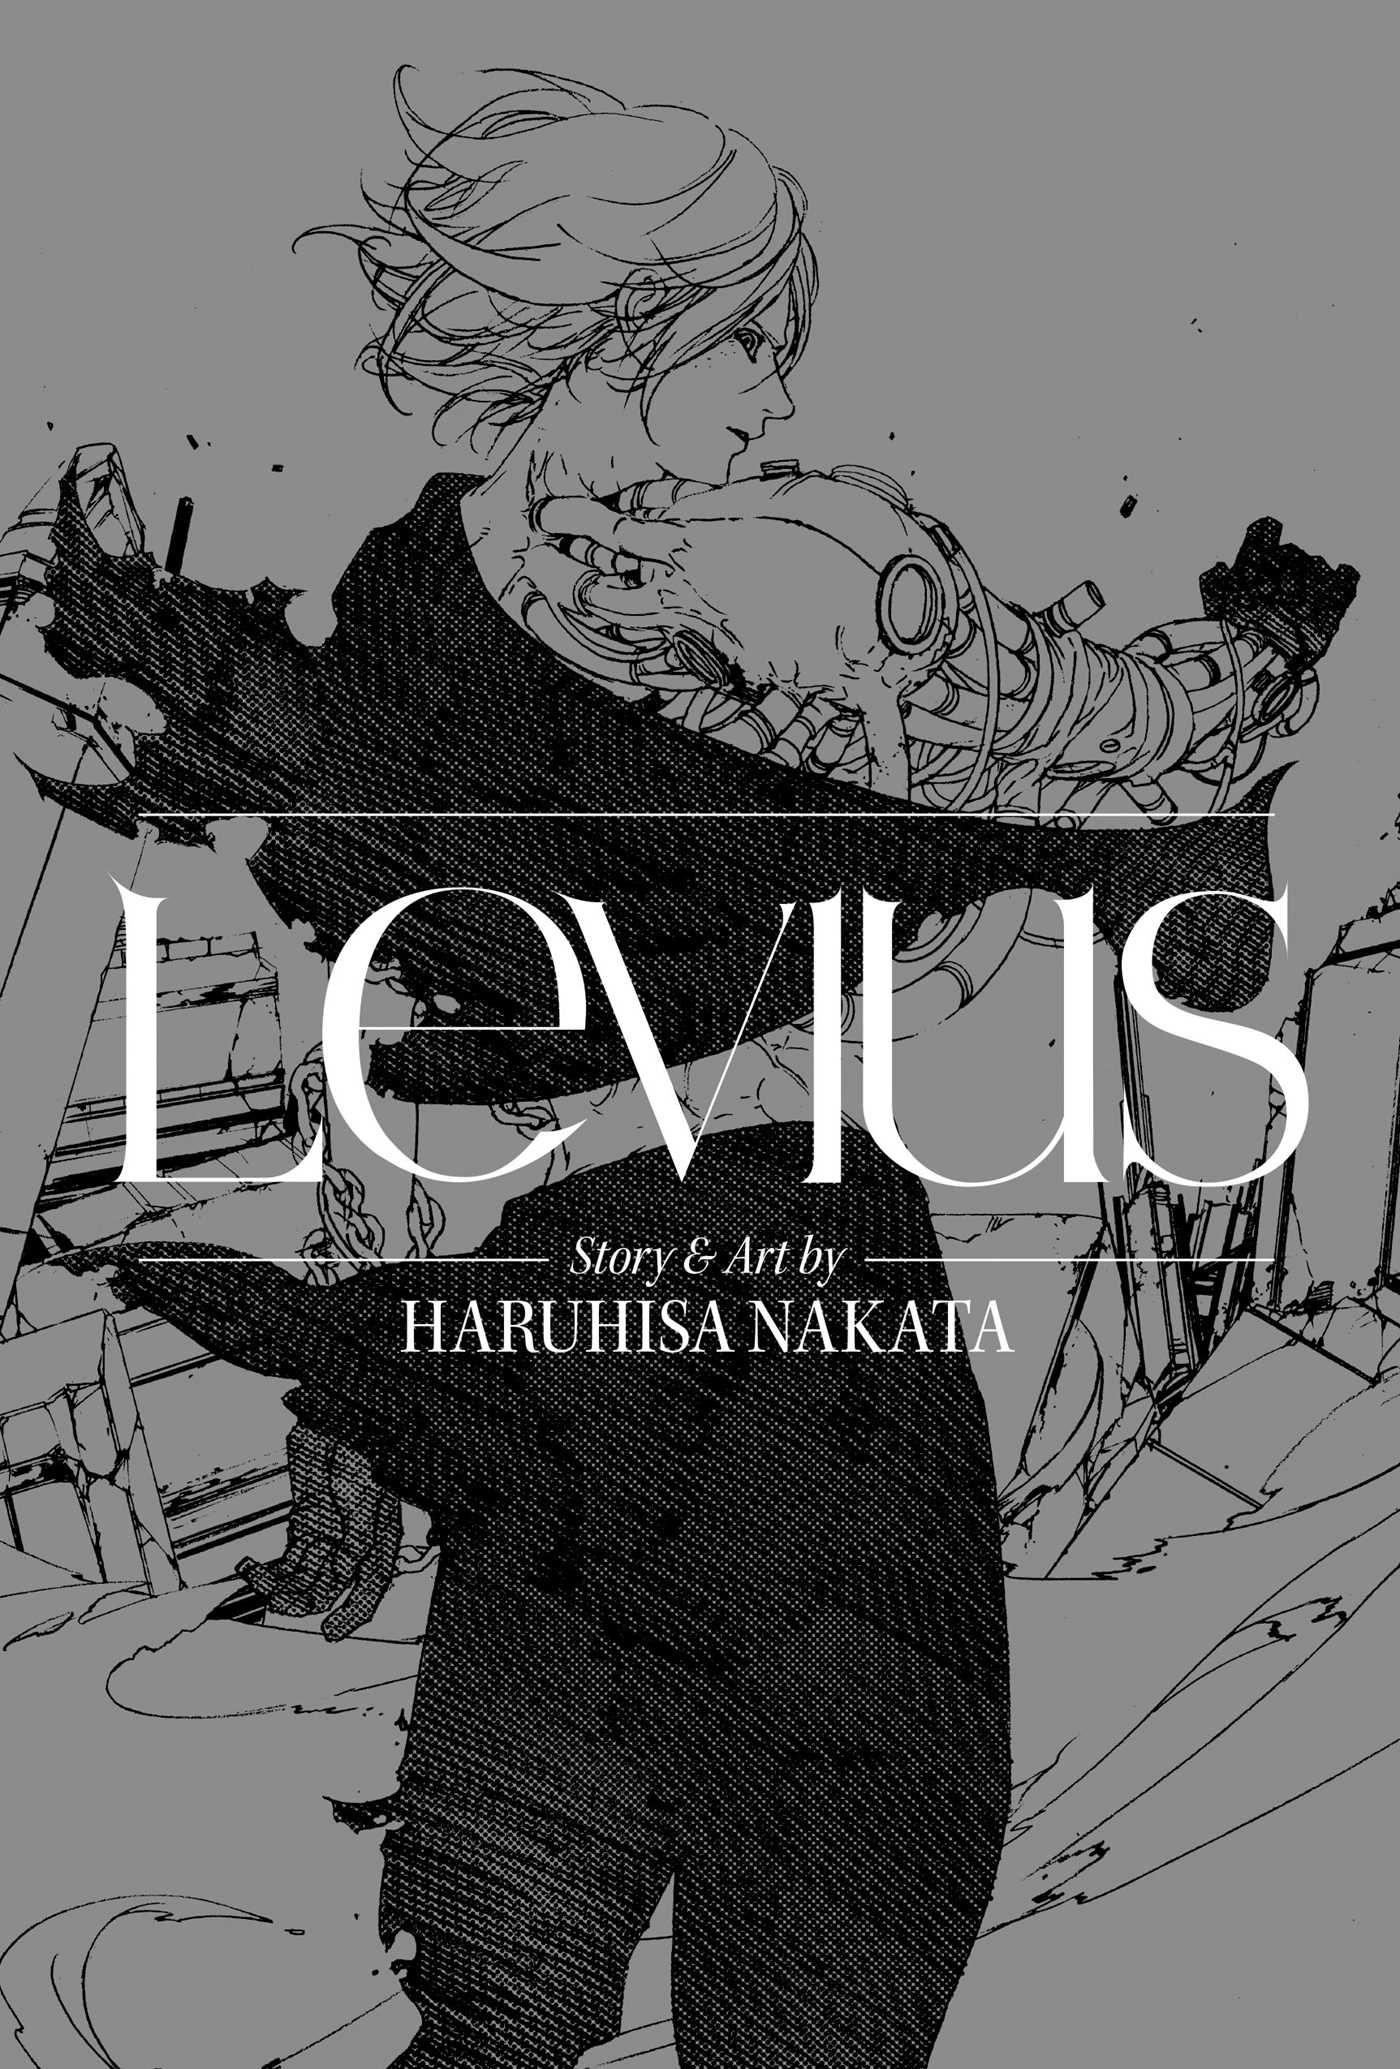 REVIEW: Levius is Worth Reading Before the Netflix Adaptation